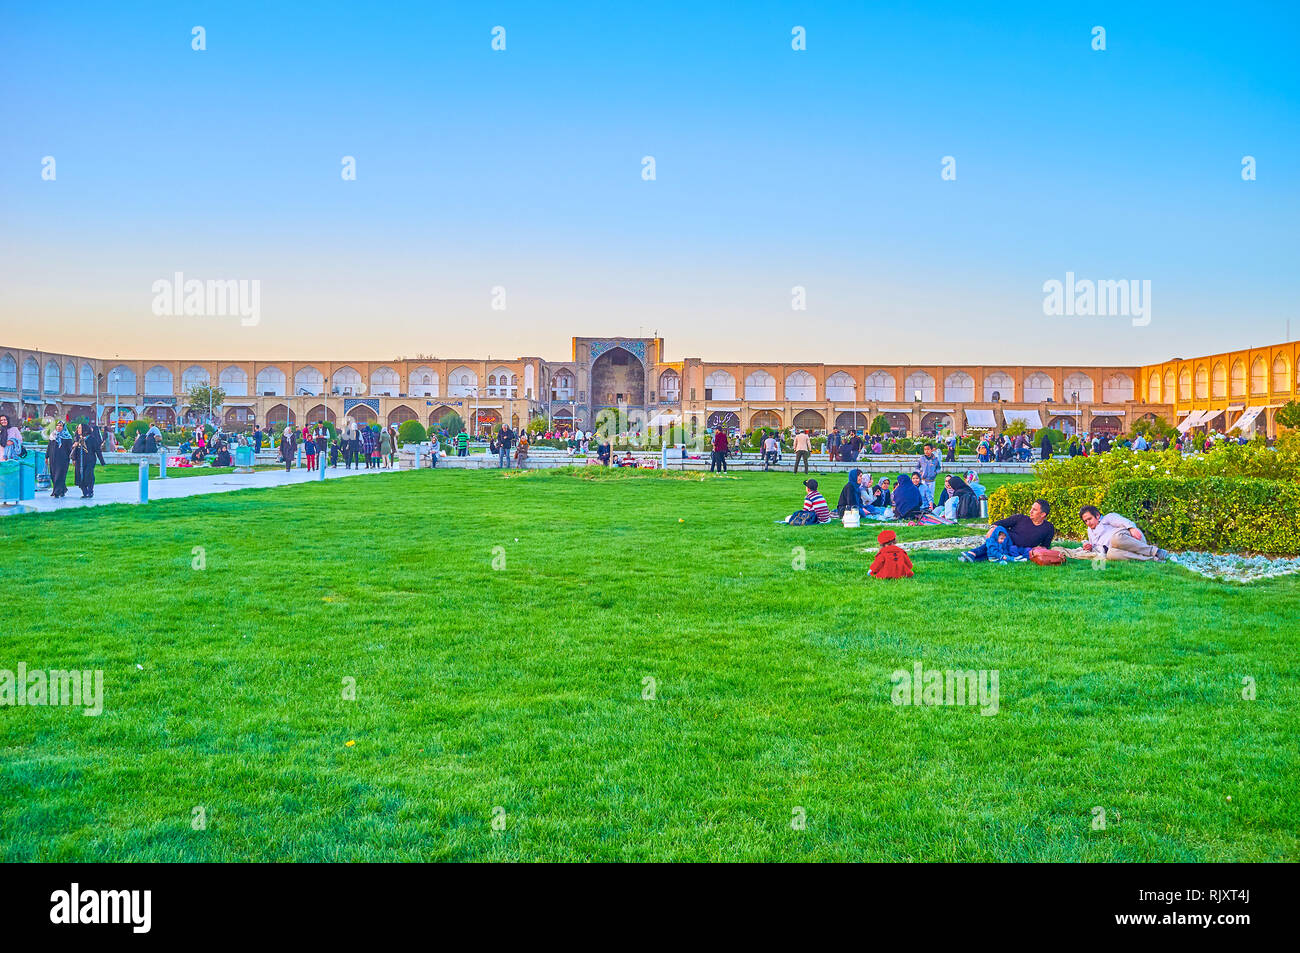 ISFAHAN, IRAN - OCTOBER 19, 2017: Weekend picnics are very popular events in life of Iranian families, and park in Naqsh-e Jahan Square is one of the  - Stock Image